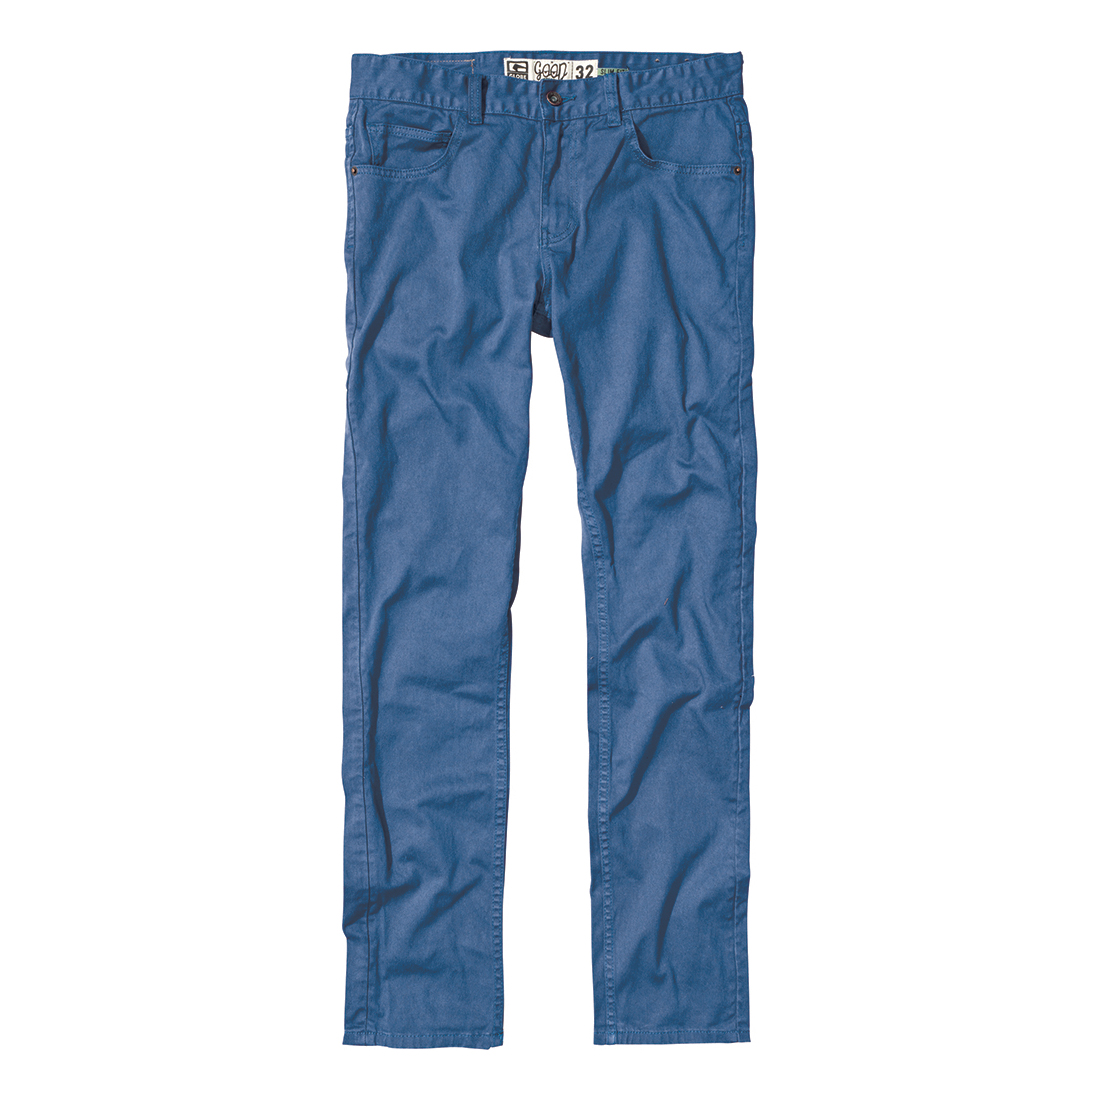 GLOBE Goodstock Kids Denim